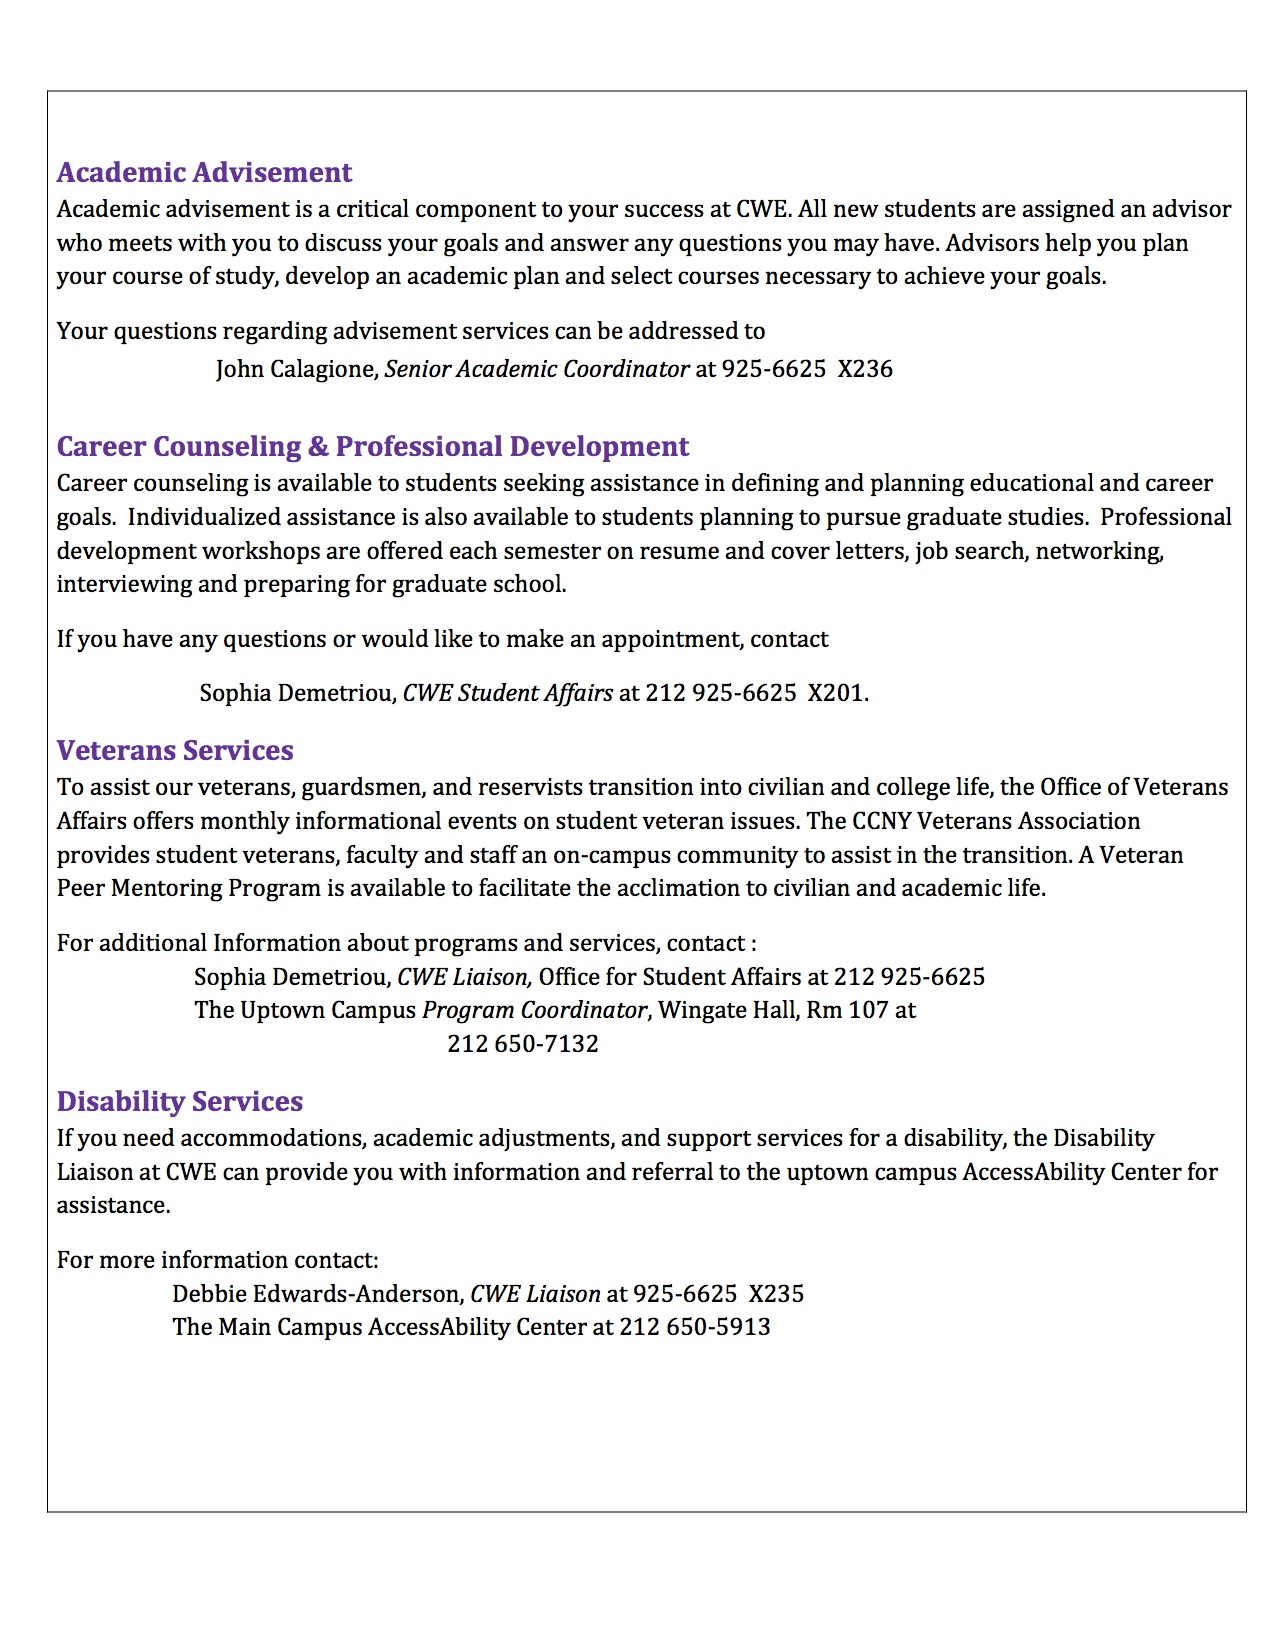 cover letter for student affairs position - 2 cwe student affairs guide the city